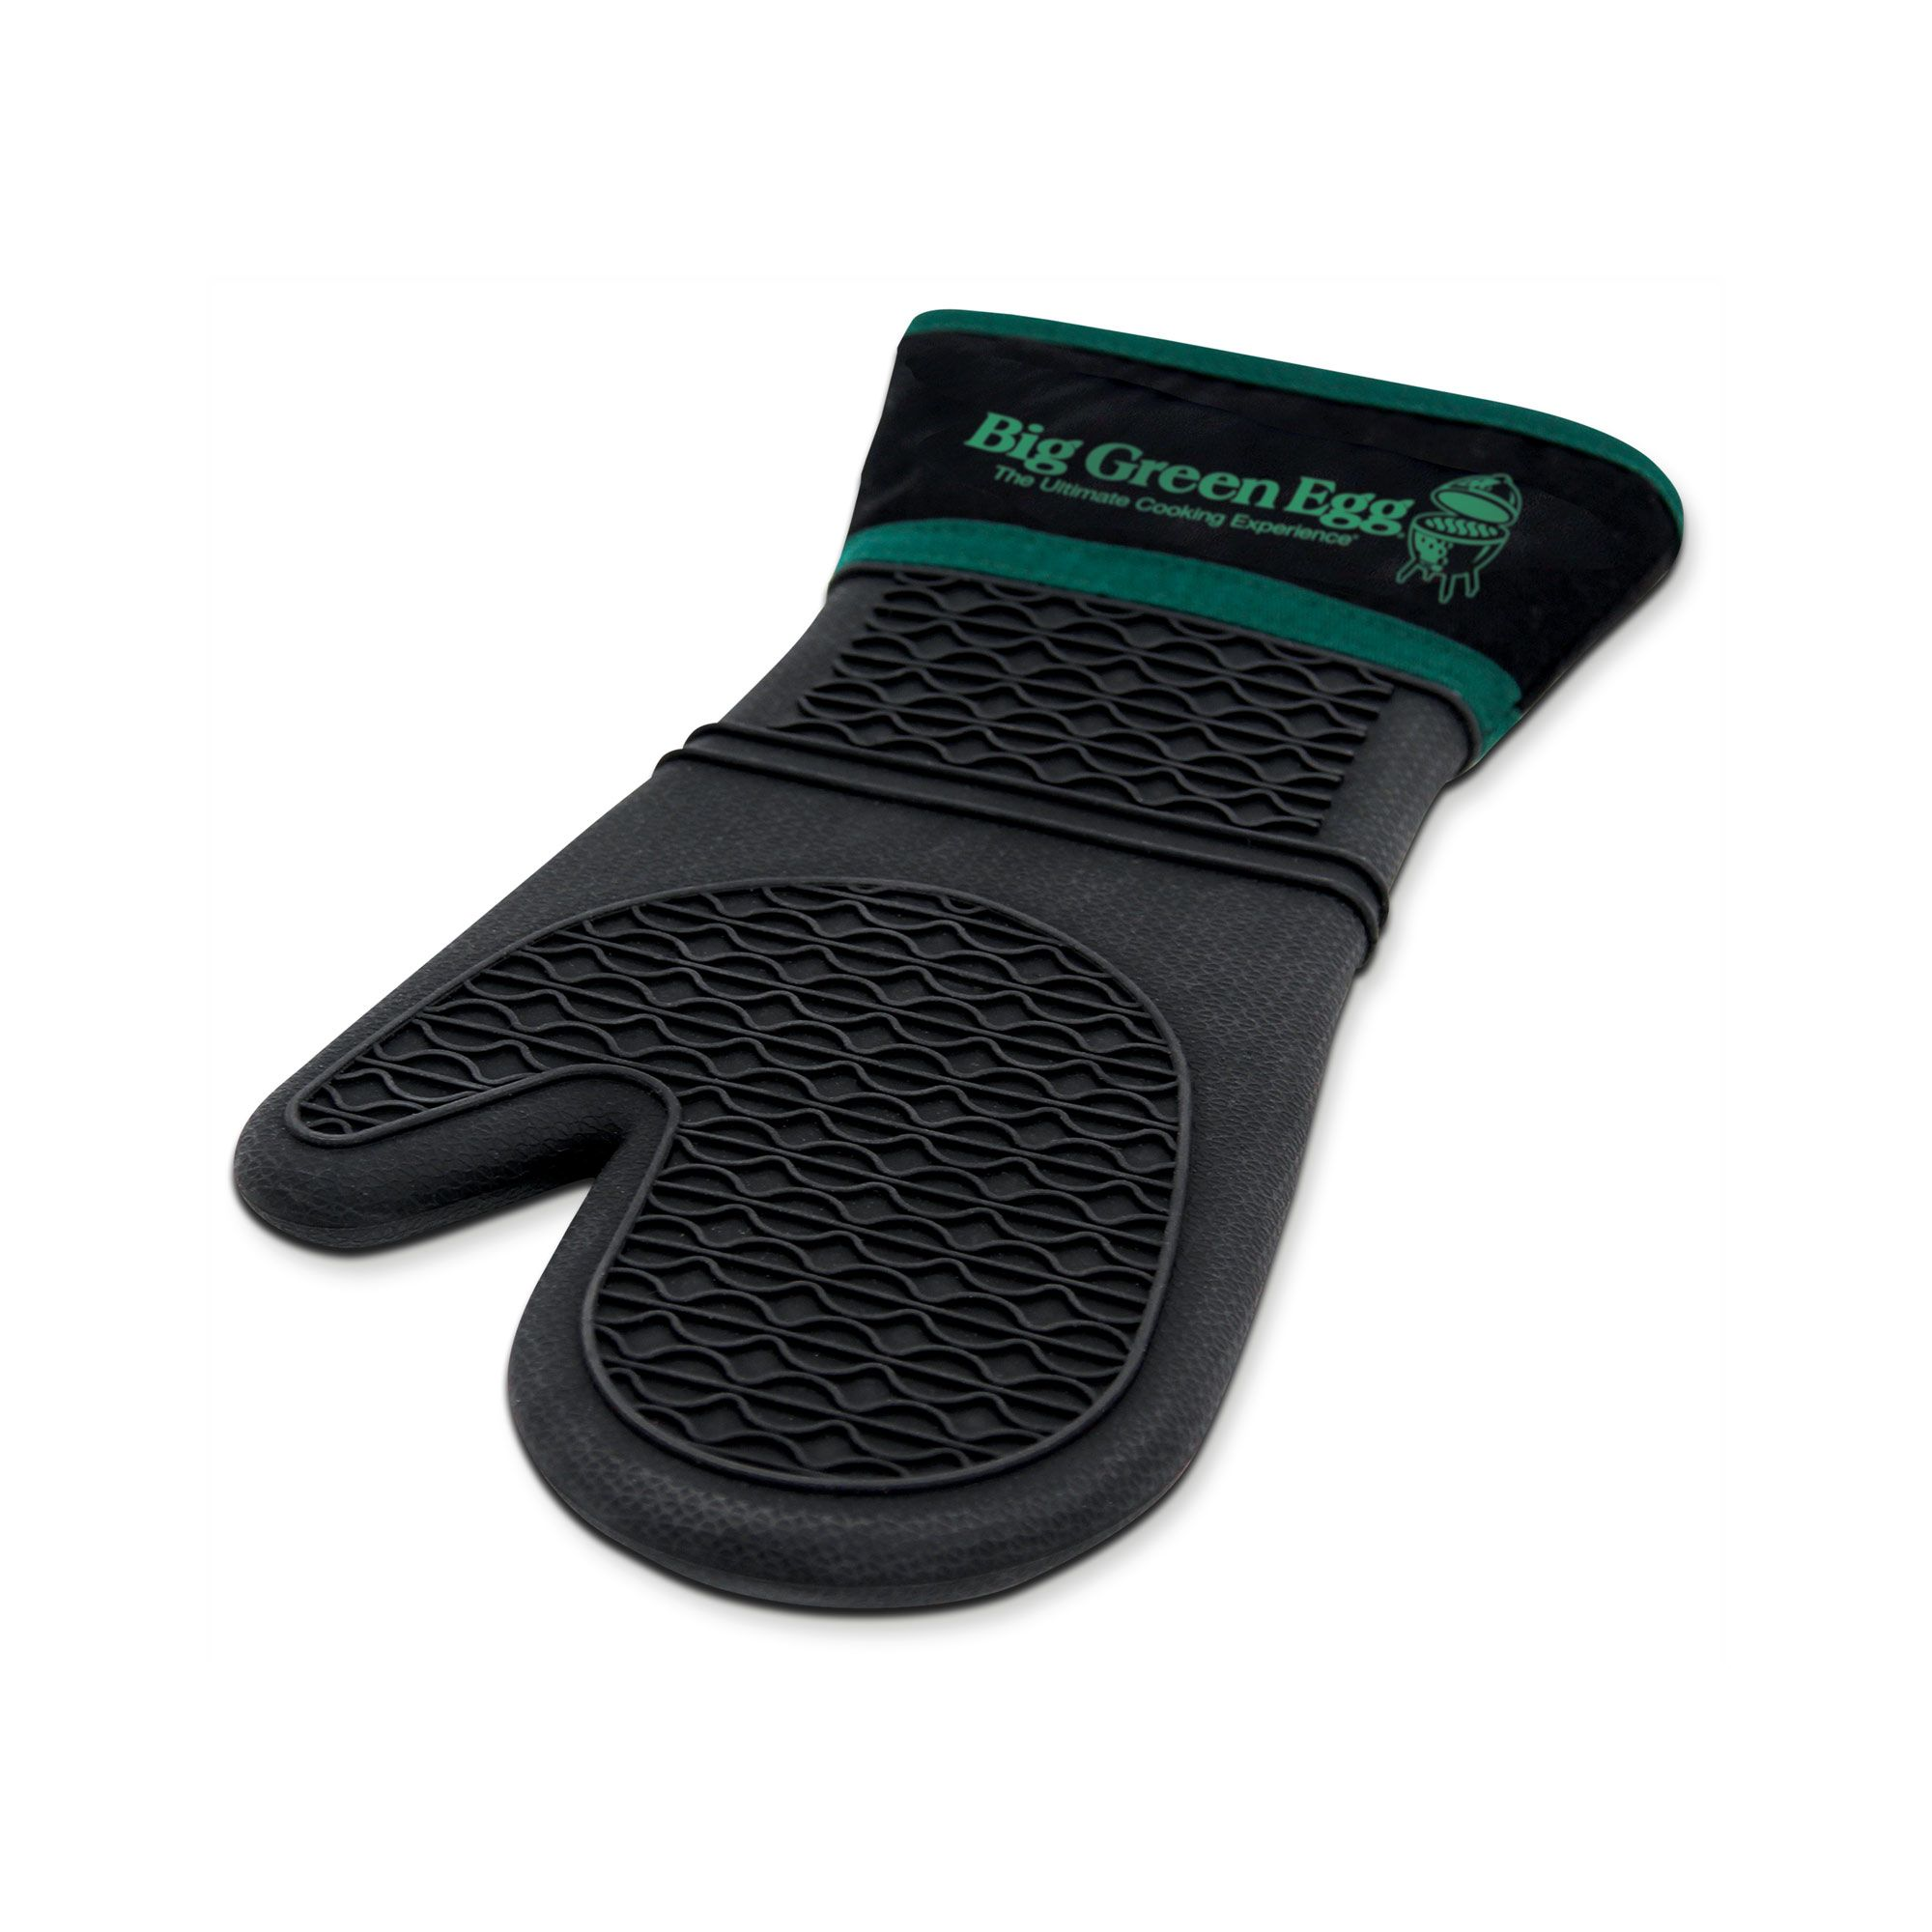 If your Big Green Egg surfaces are too hot to handle, you need a Heat Resistant Mitt with Fabric Cuff. They're comfy, safe, and extremely heatproof.